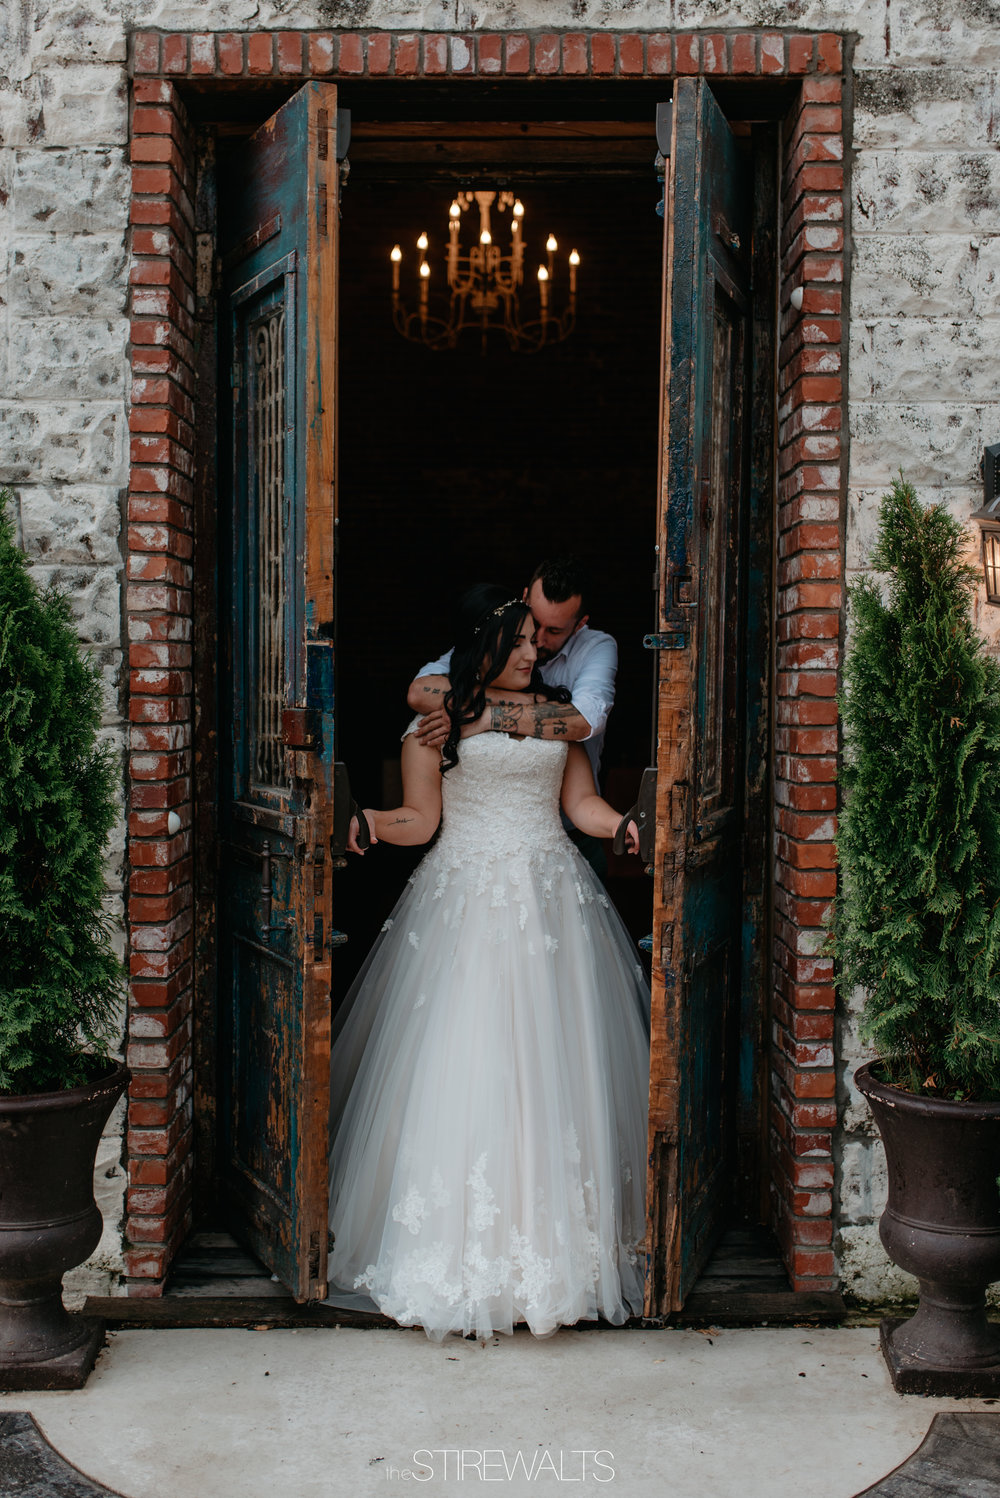 Sara.Jon.Wedding.Blog.2018.©TheStirewalts-35.jpg